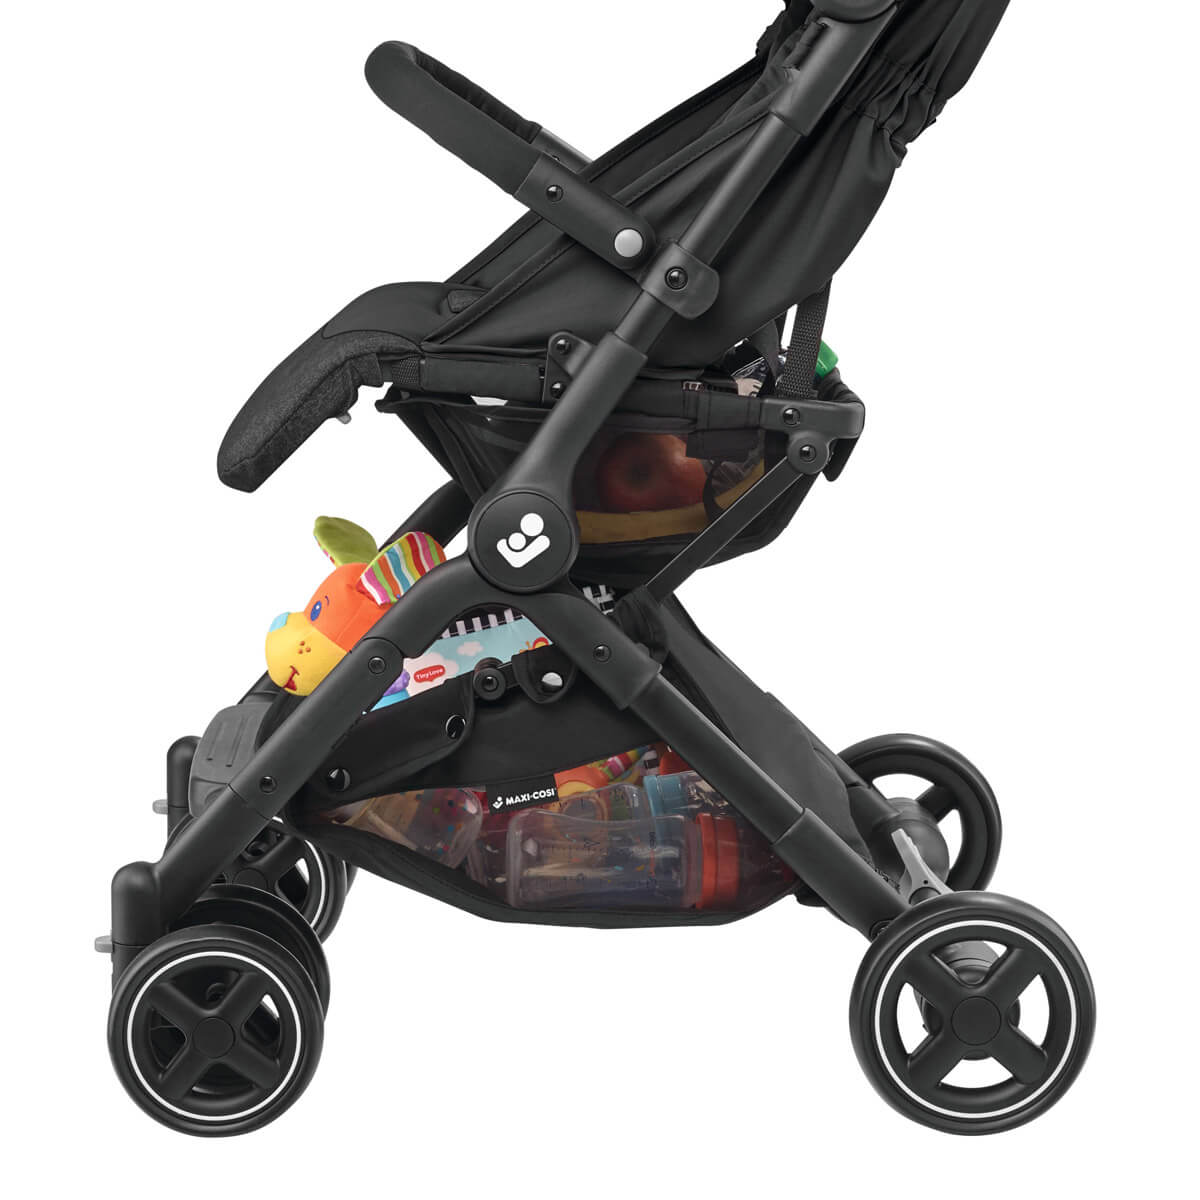 Lara stroller provides maximum storage and easy access to parents' belongings with two shopping baskets